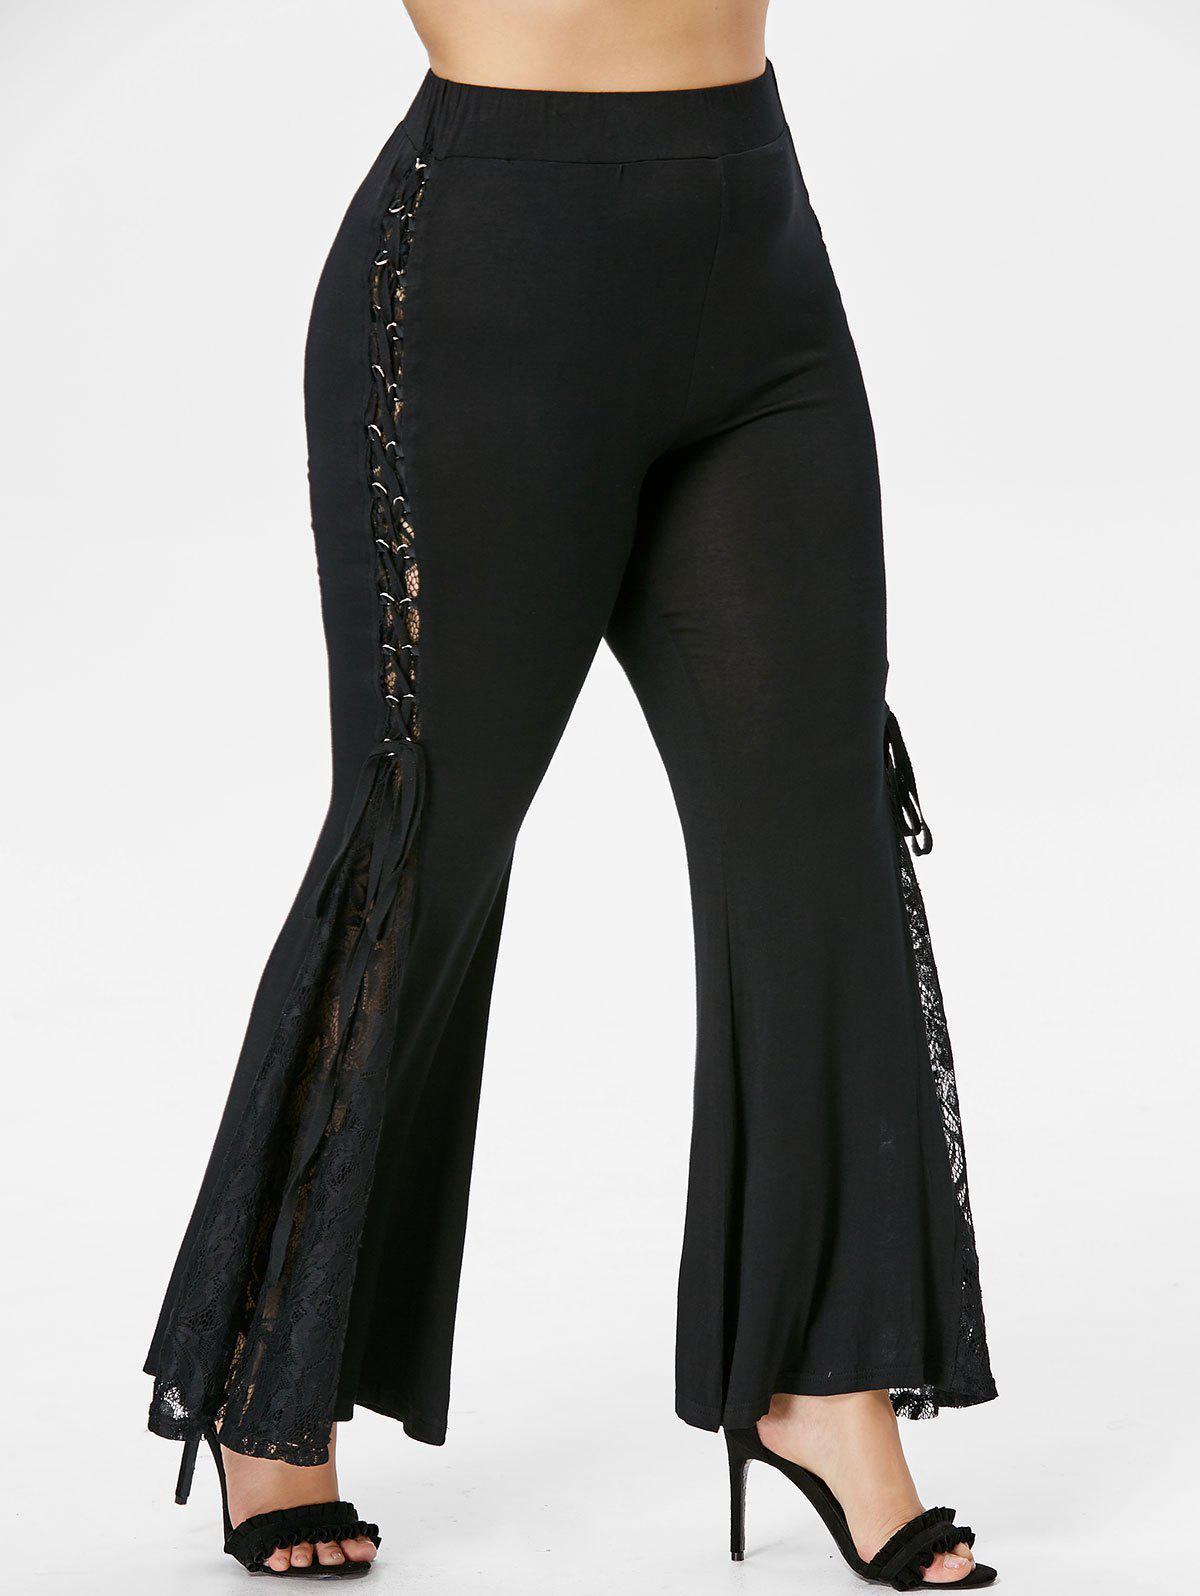 Lace Insert Plus Size Flare Pants - BLACK 4X